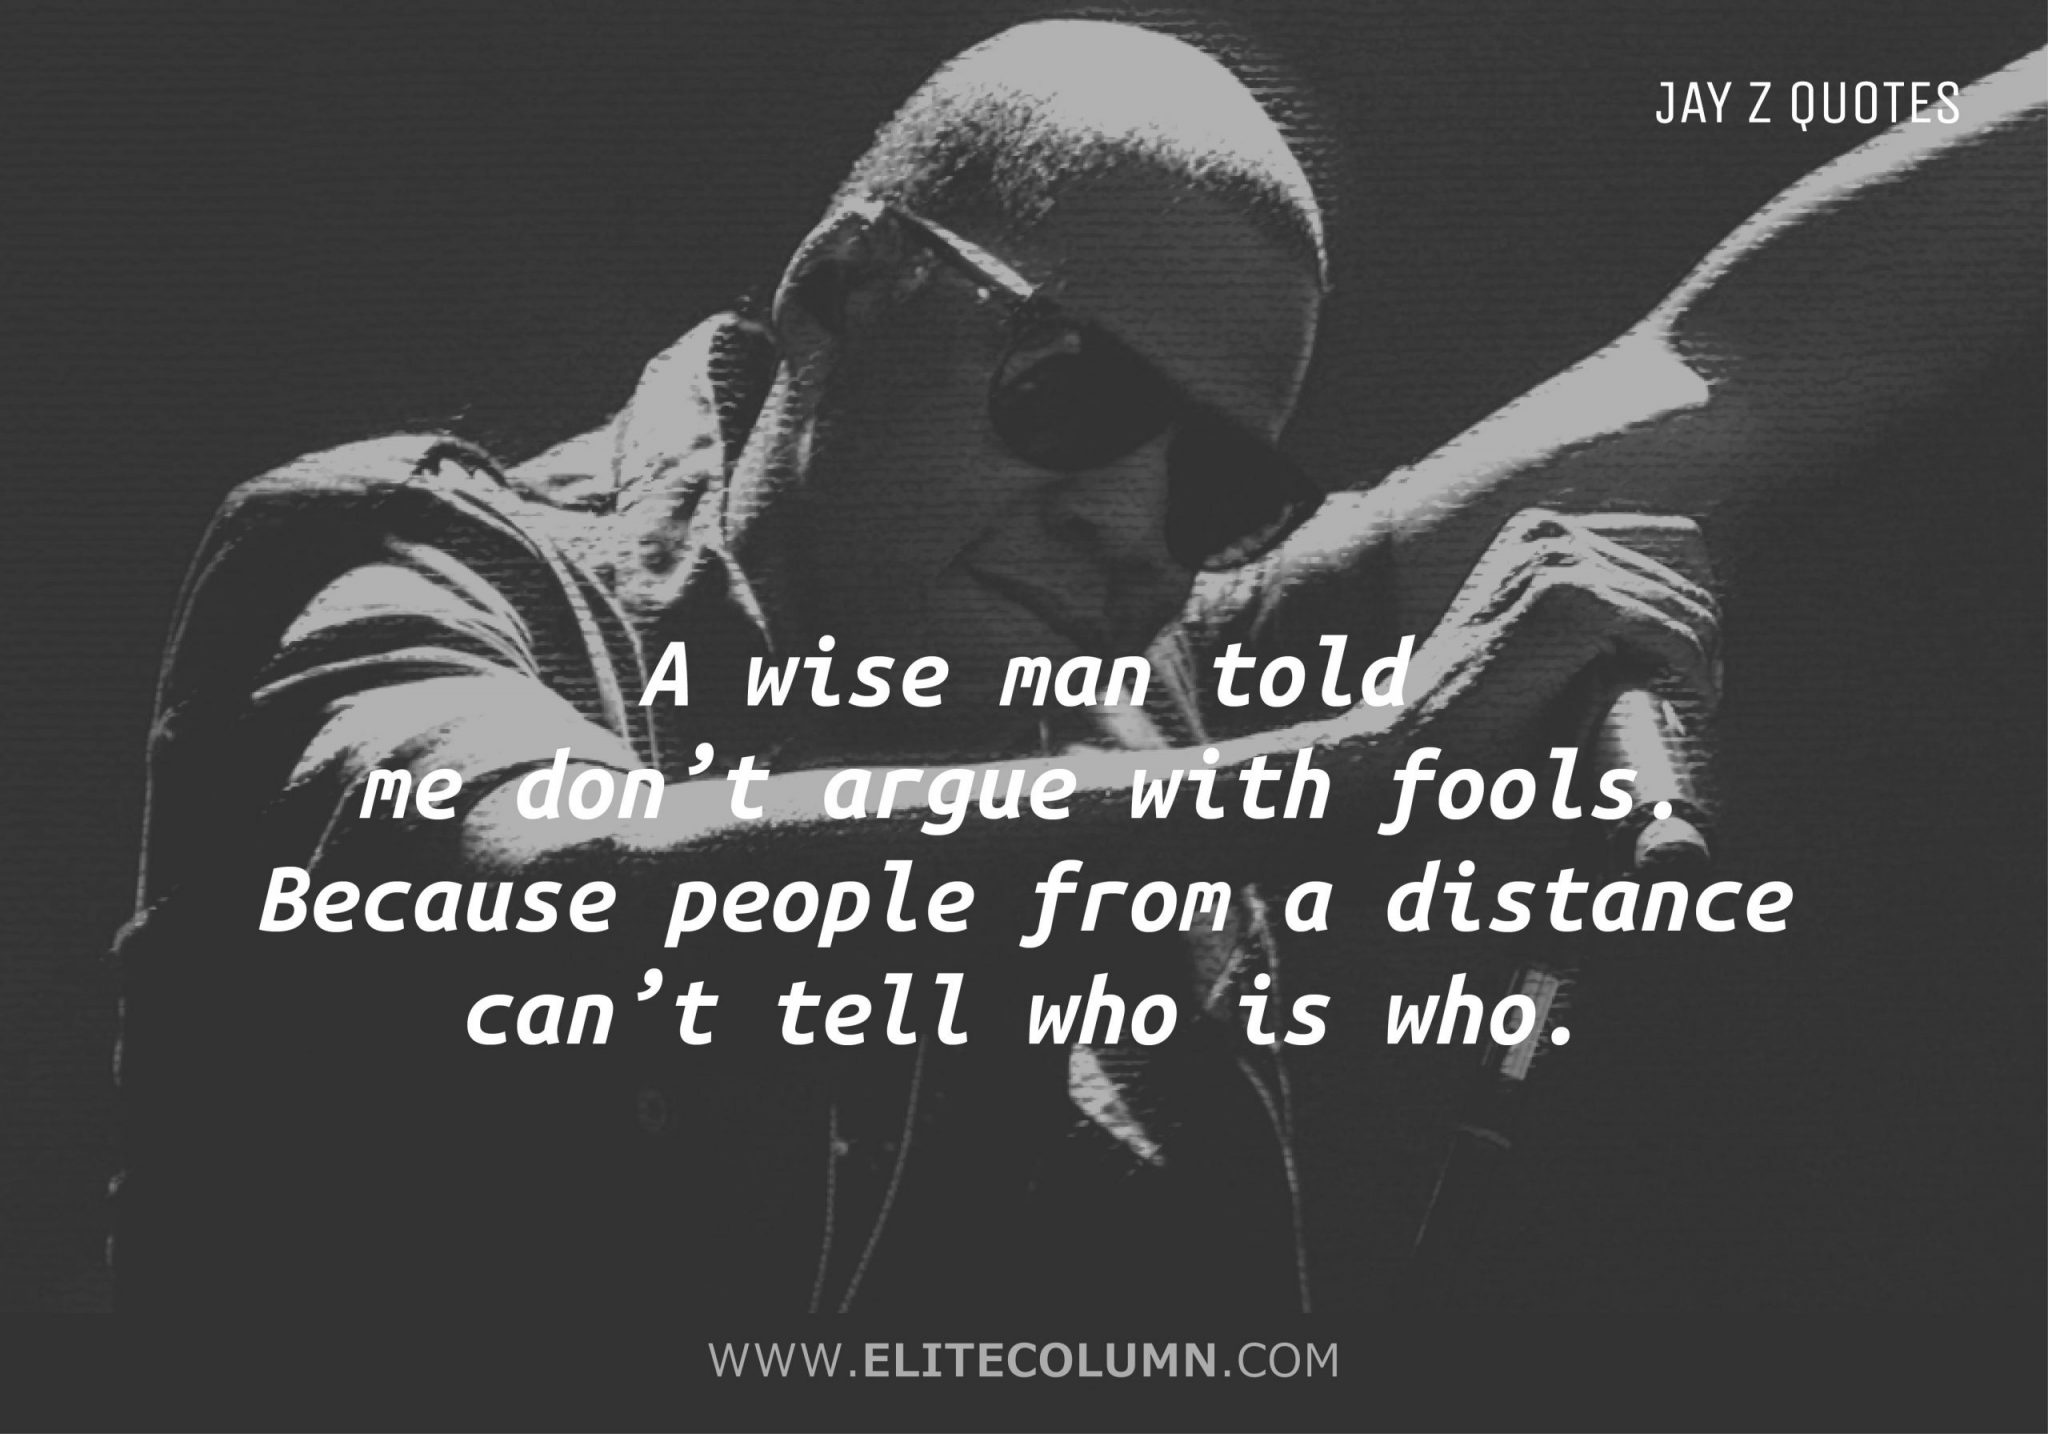 Jay Z Quotes (10)